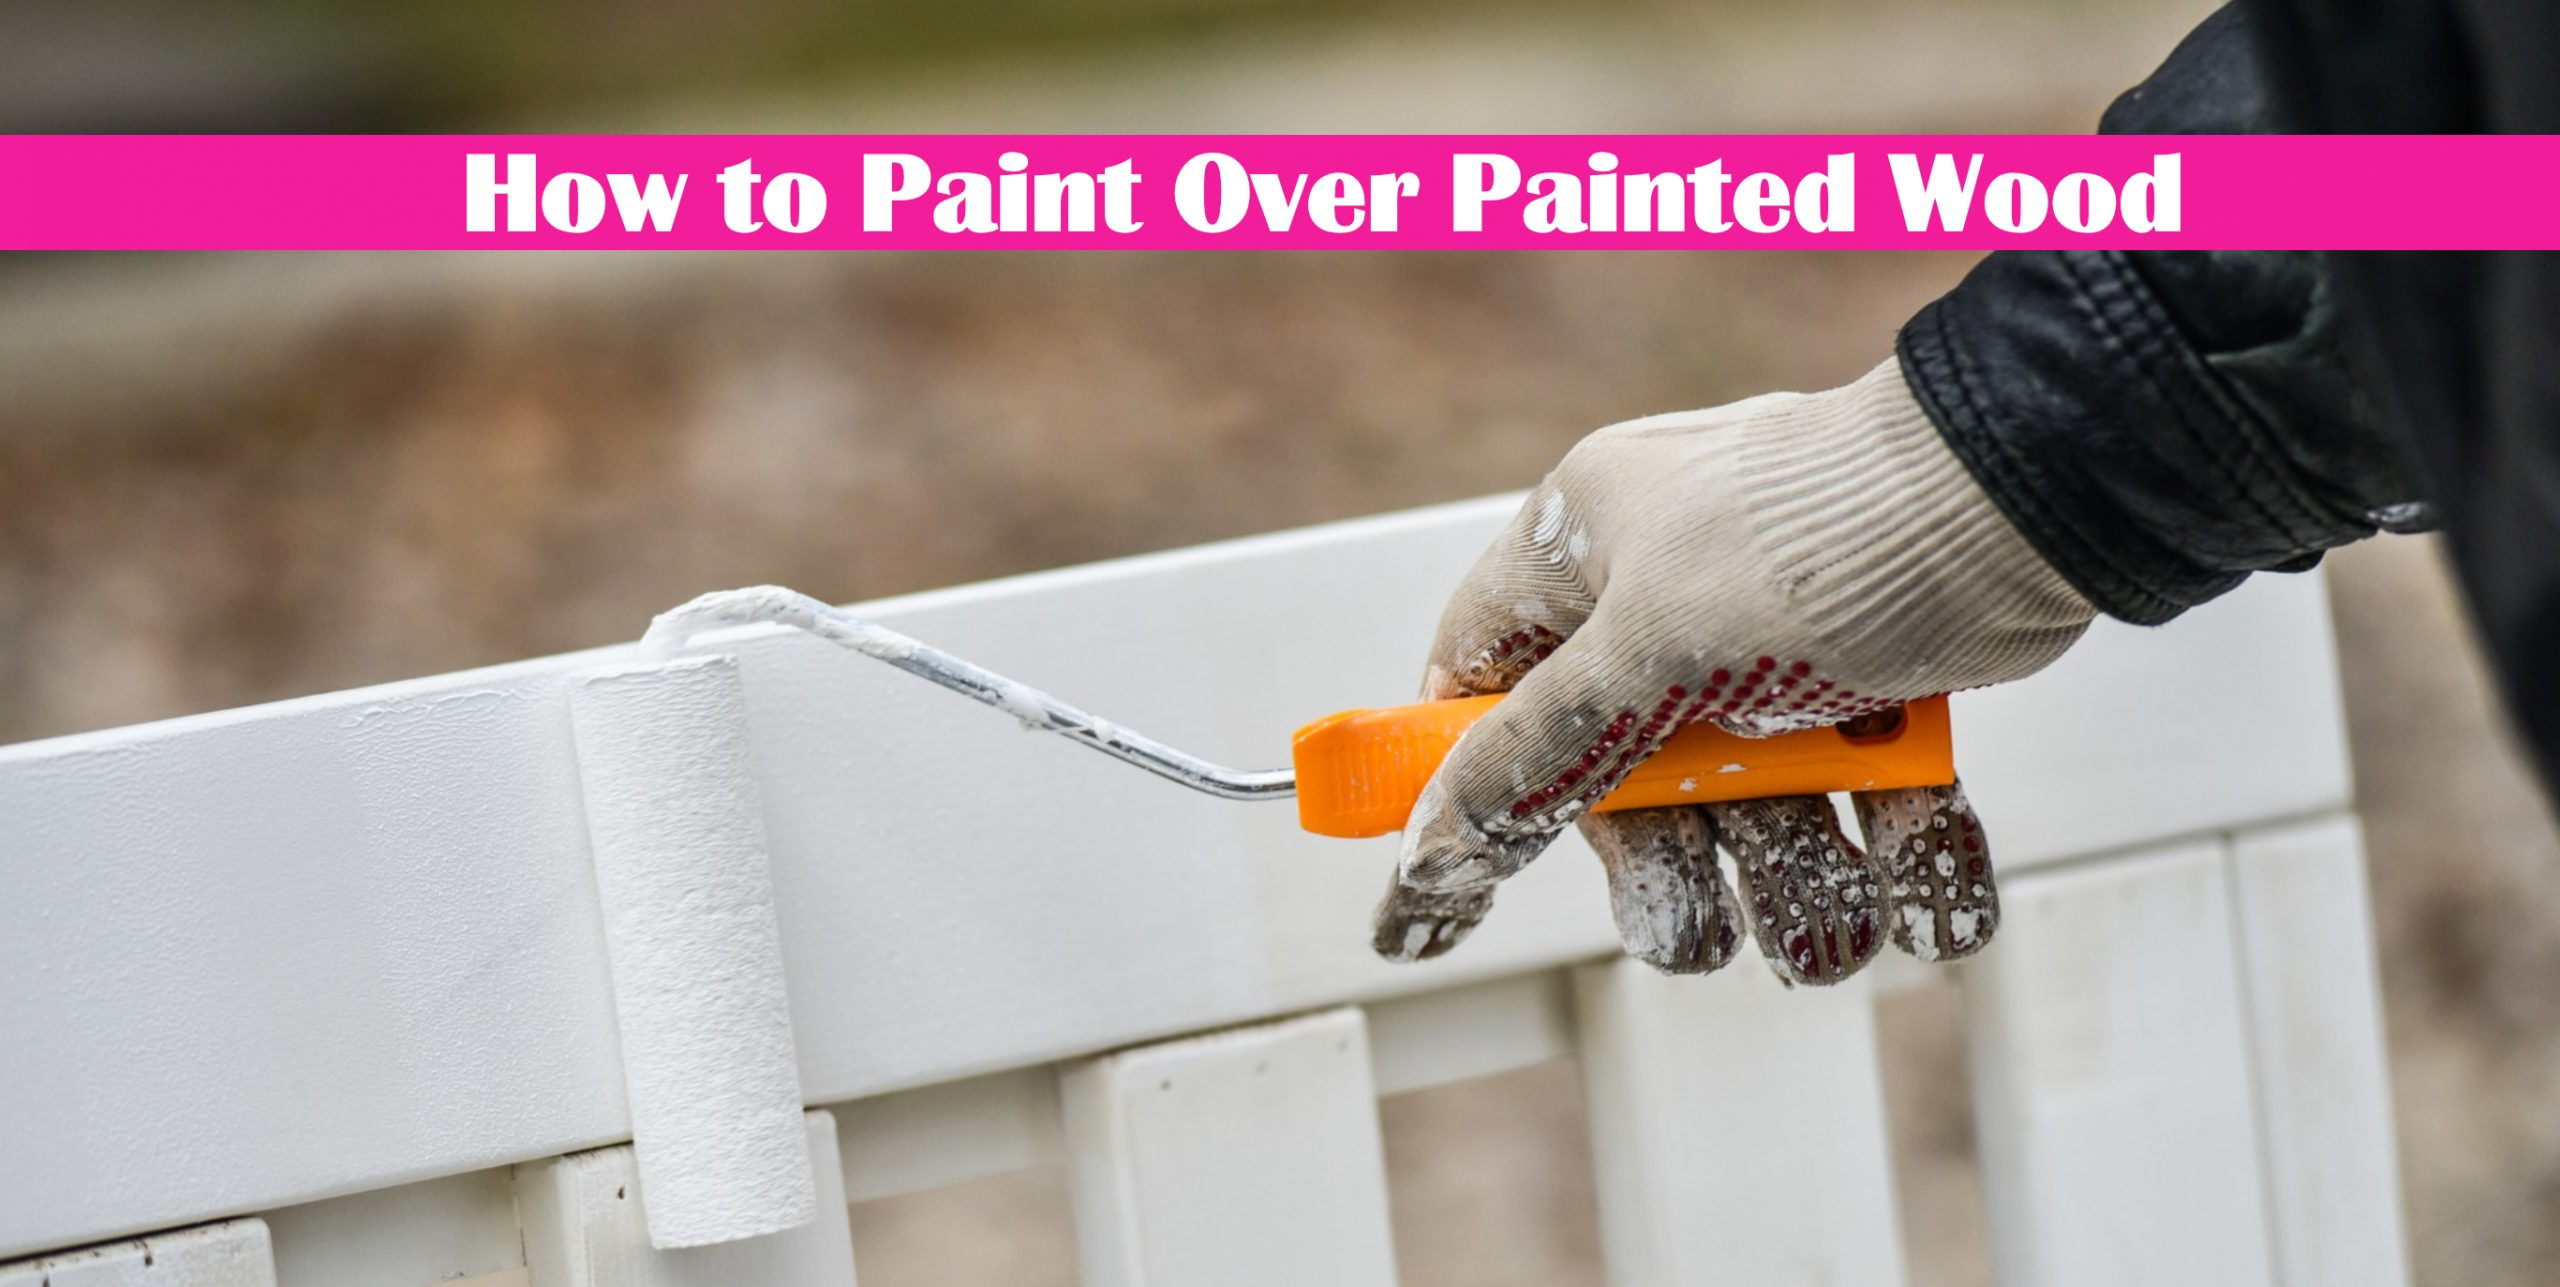 How to Paint Over Painted Wood and Prevent Peeling Paint